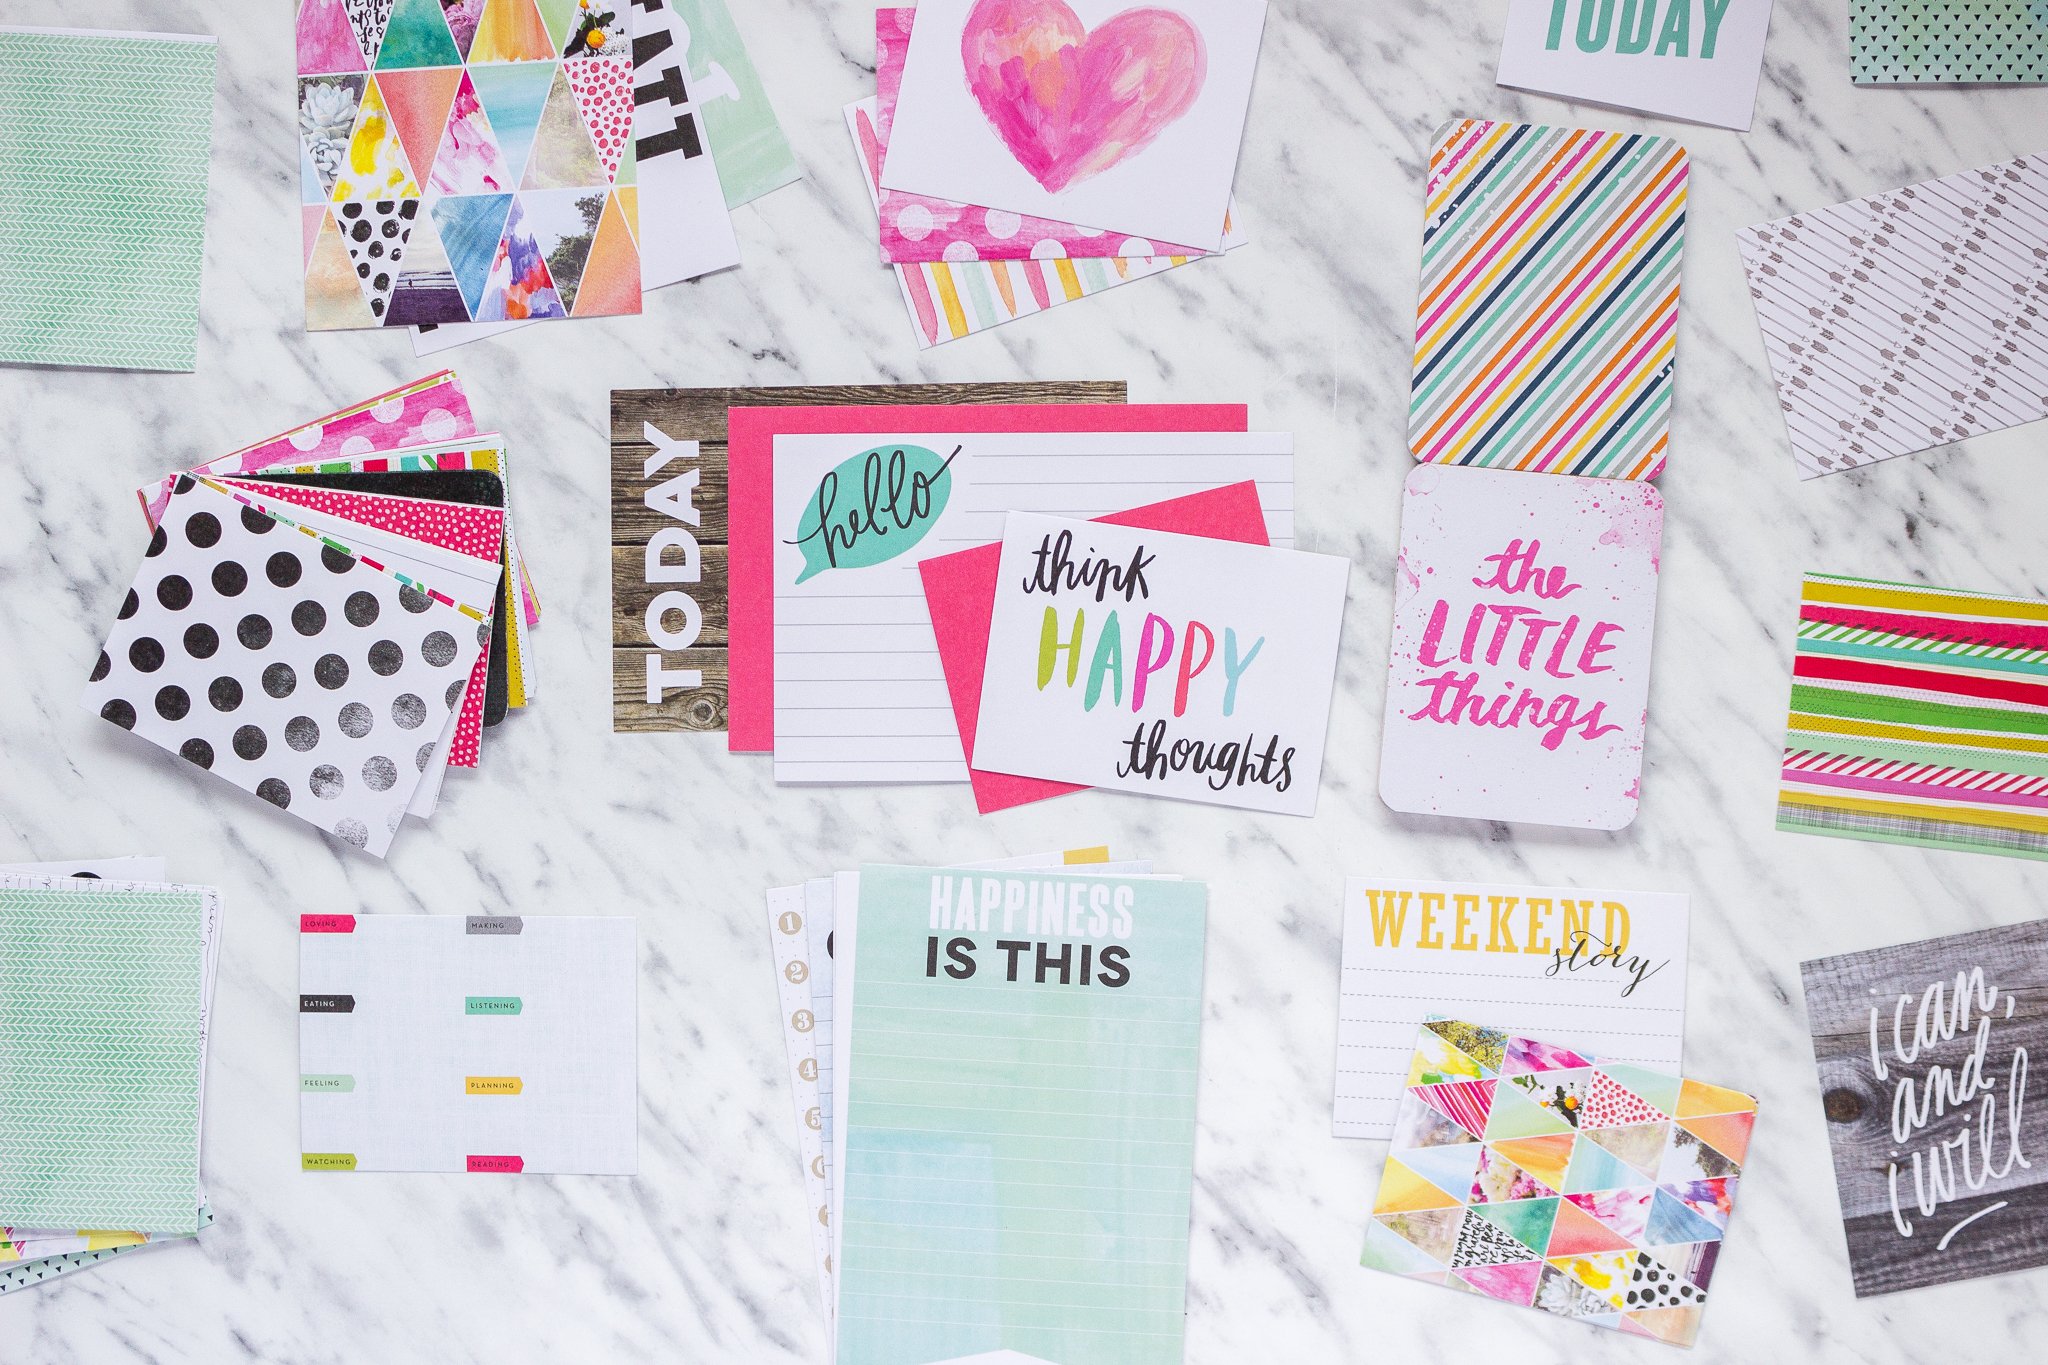 Karty Project Life journaling